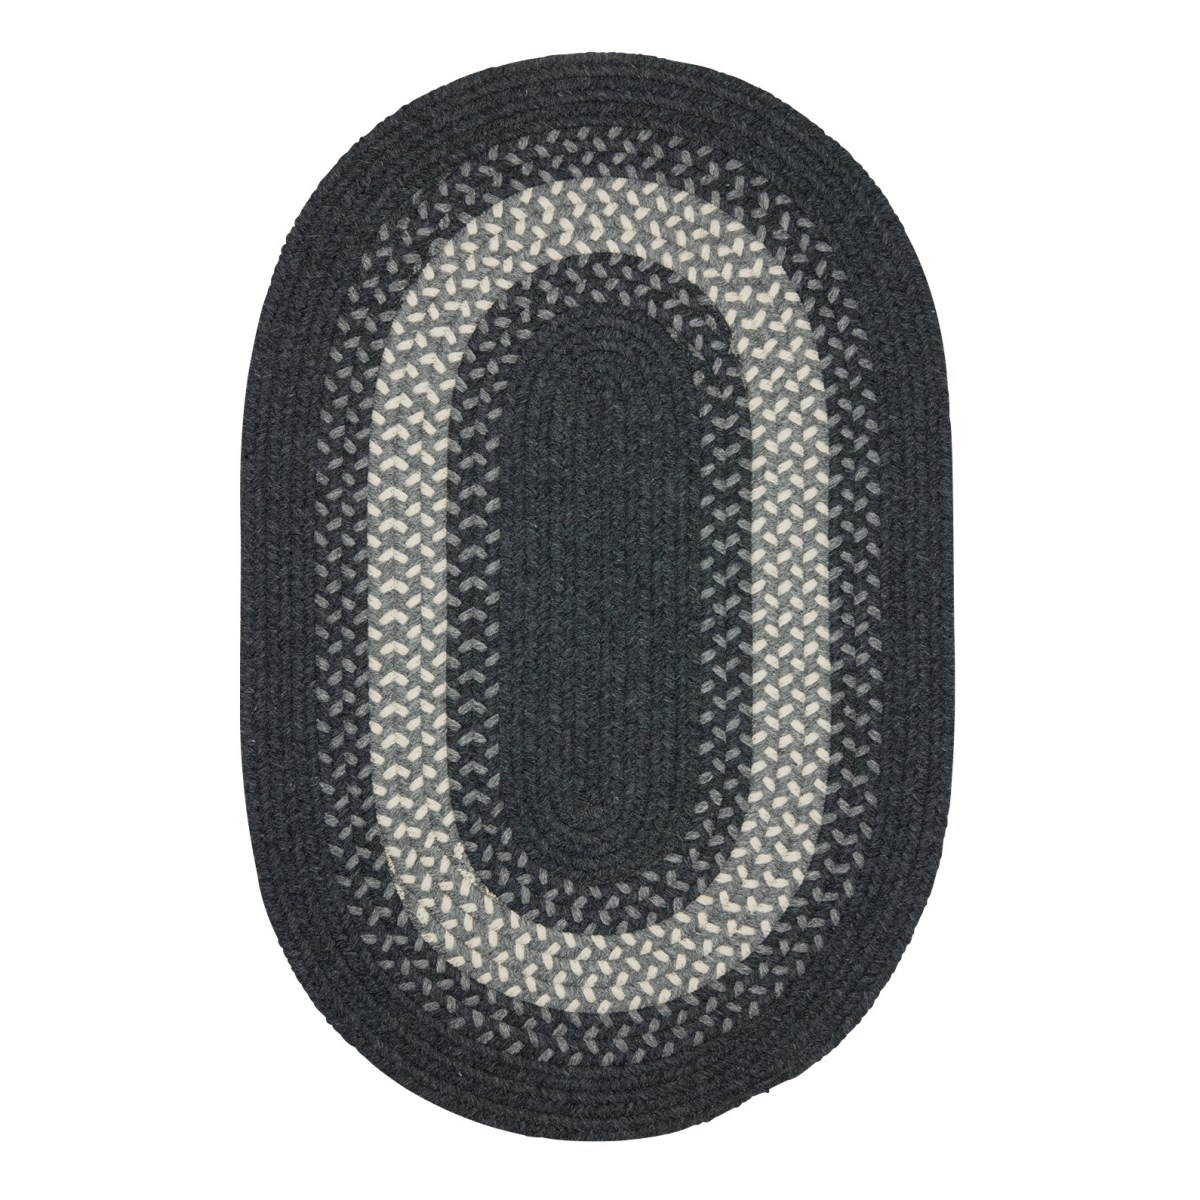 North Ridge Charcoal Outdoor Braided Oval Rugs